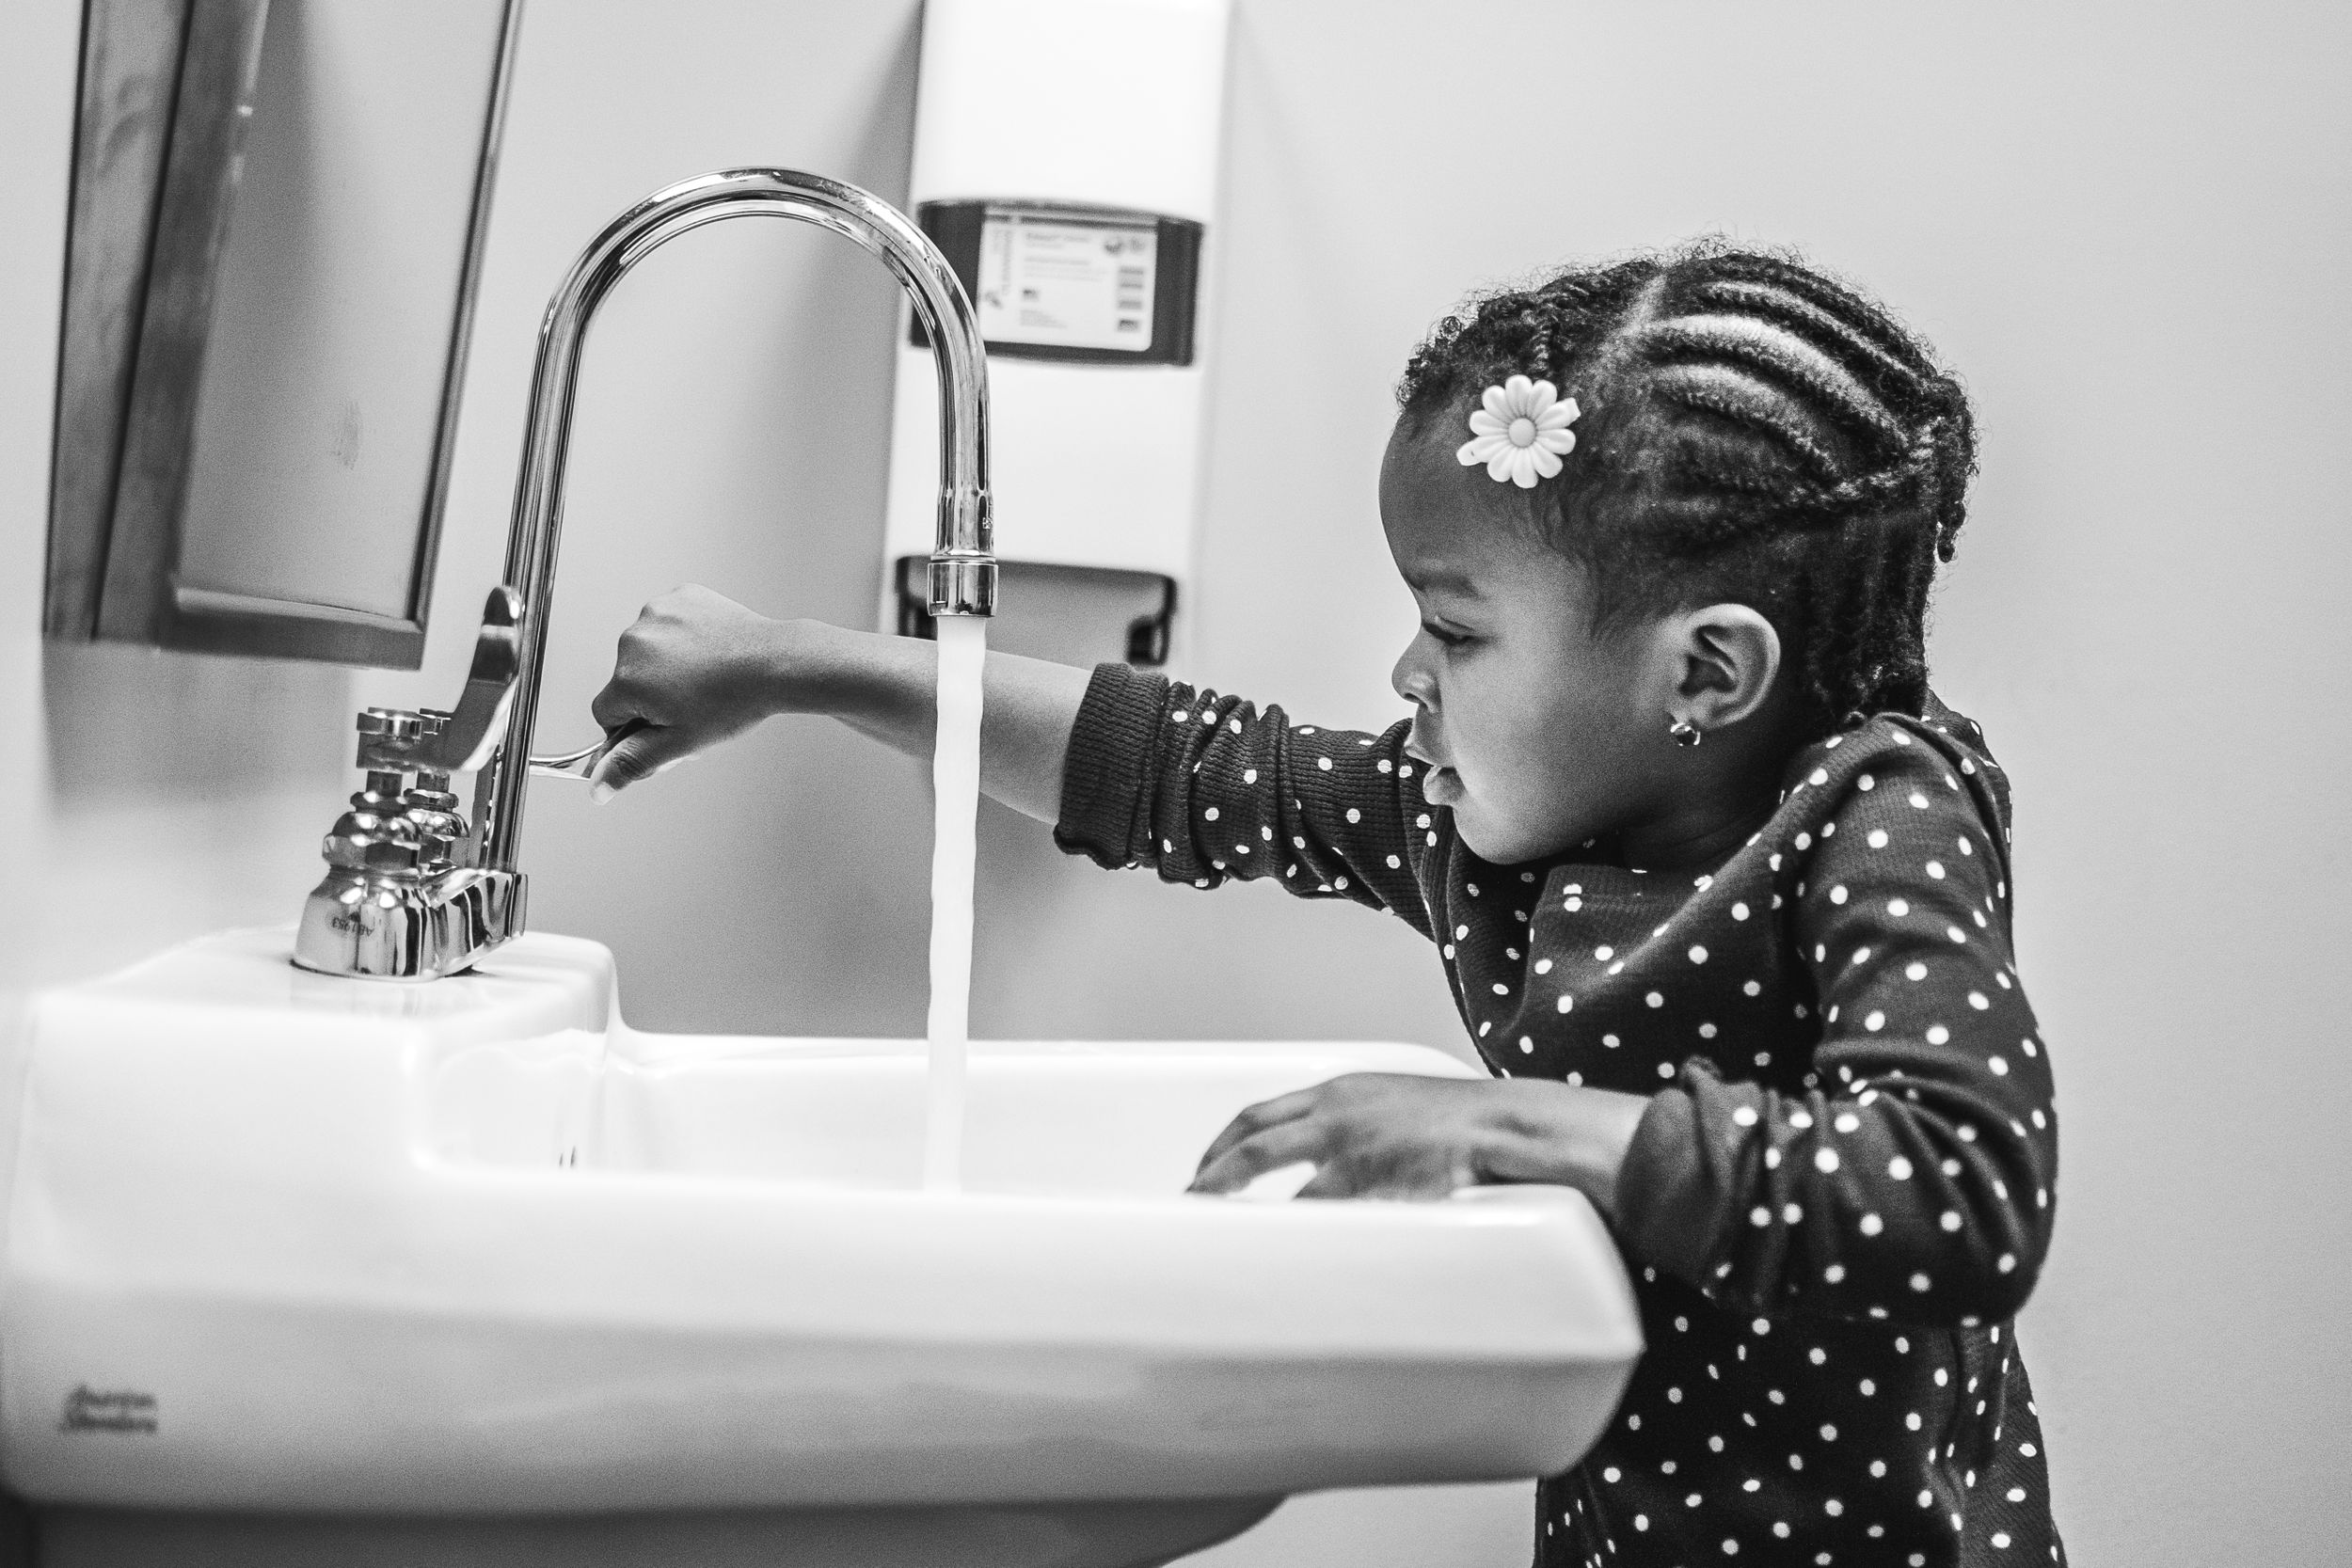 little-girl-washing-her-hands-at-the-sink